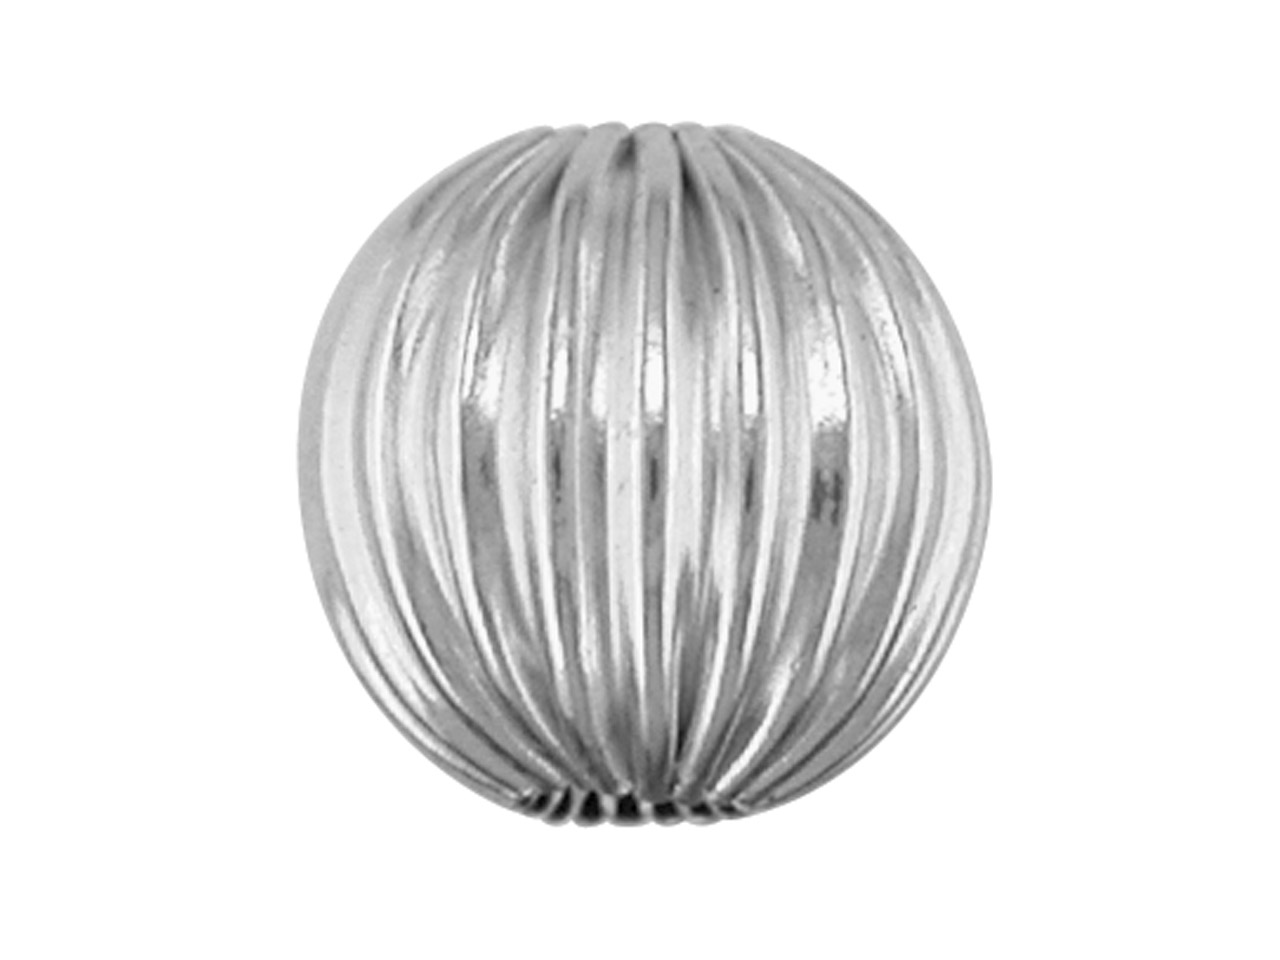 Sterling Silver Beads Corrugated    Round, 5mm, Pack of 10, 2 Hole Bead